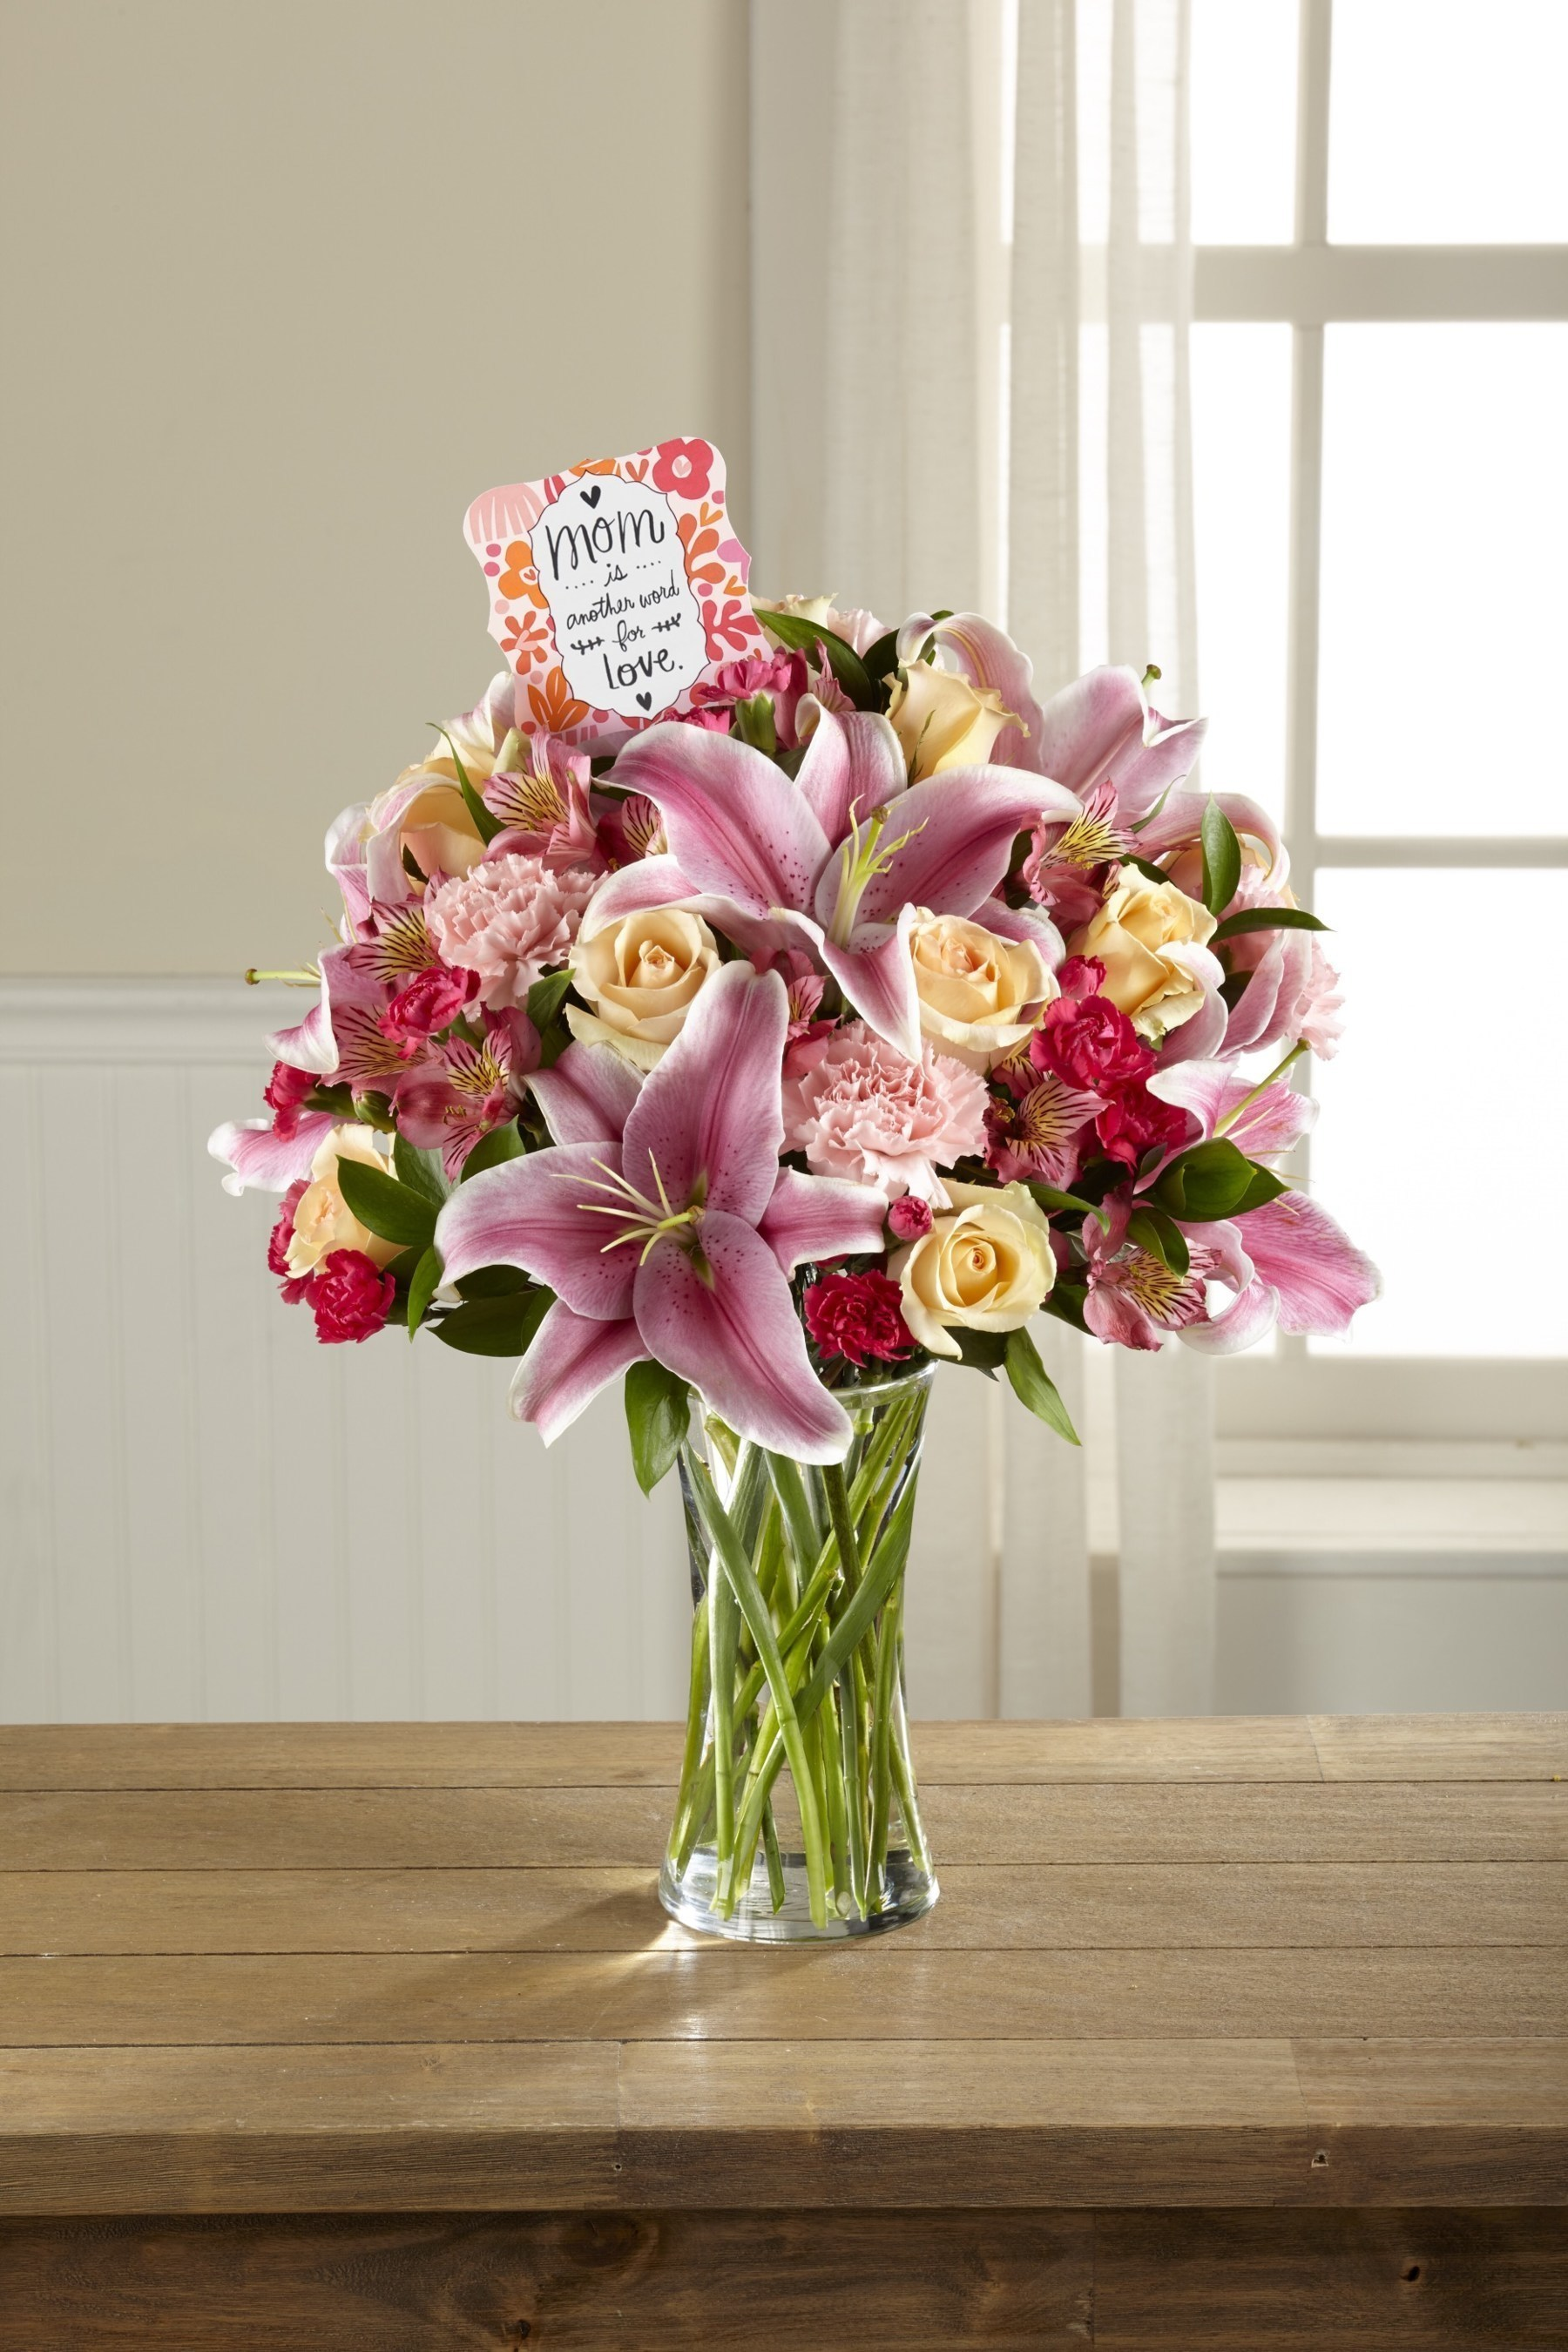 FTD® and Hallmark Launch Exclusive Artist-Designed Floral